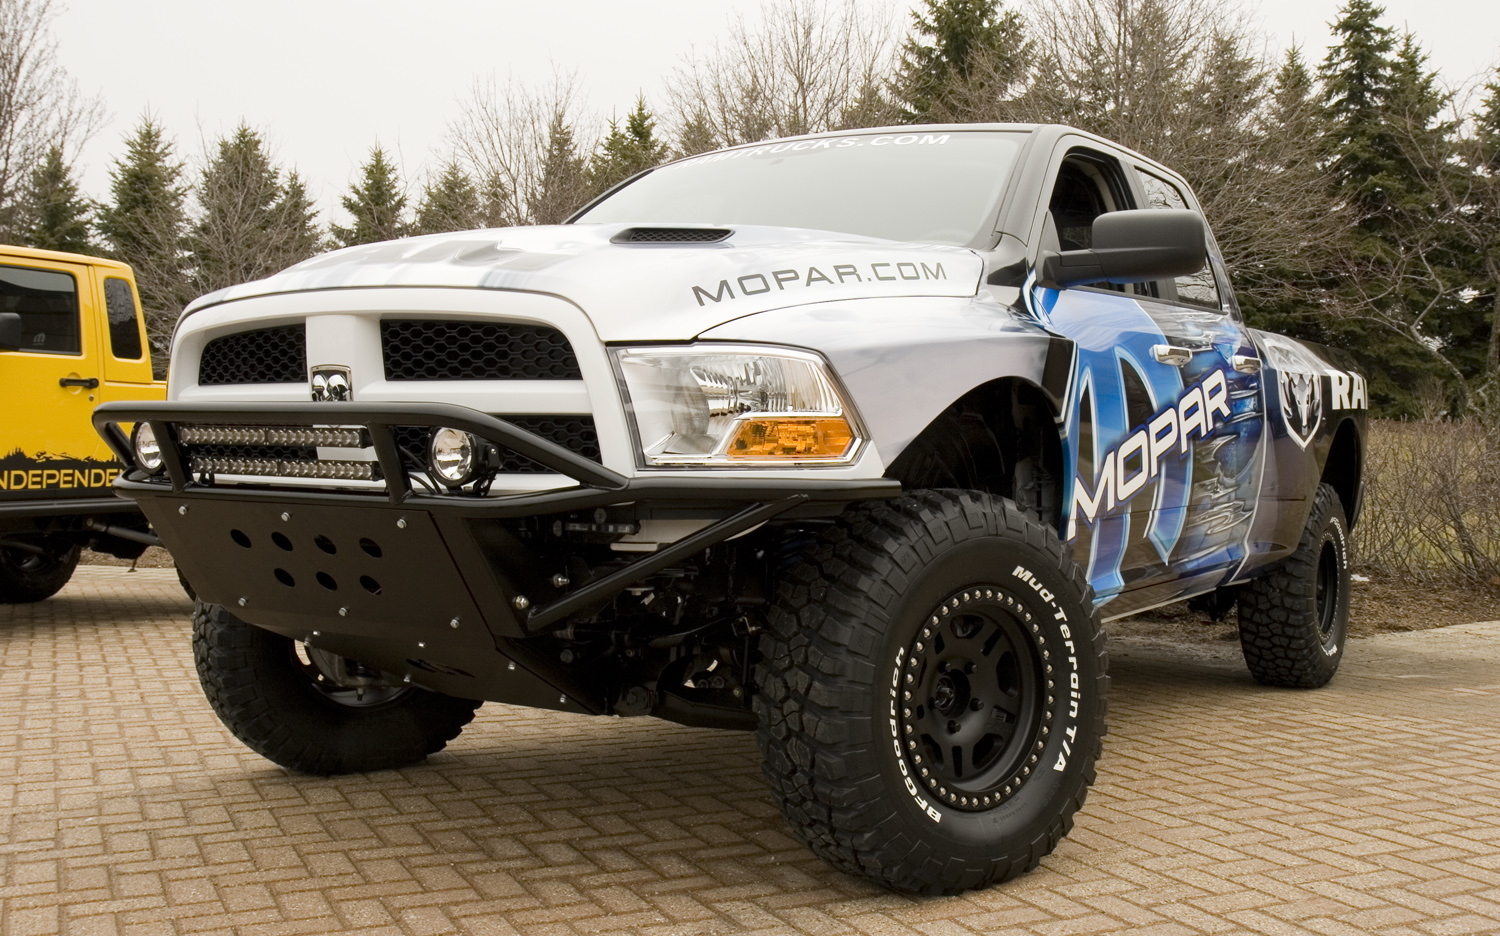 2012 Ram Runner, the Snake Killer?